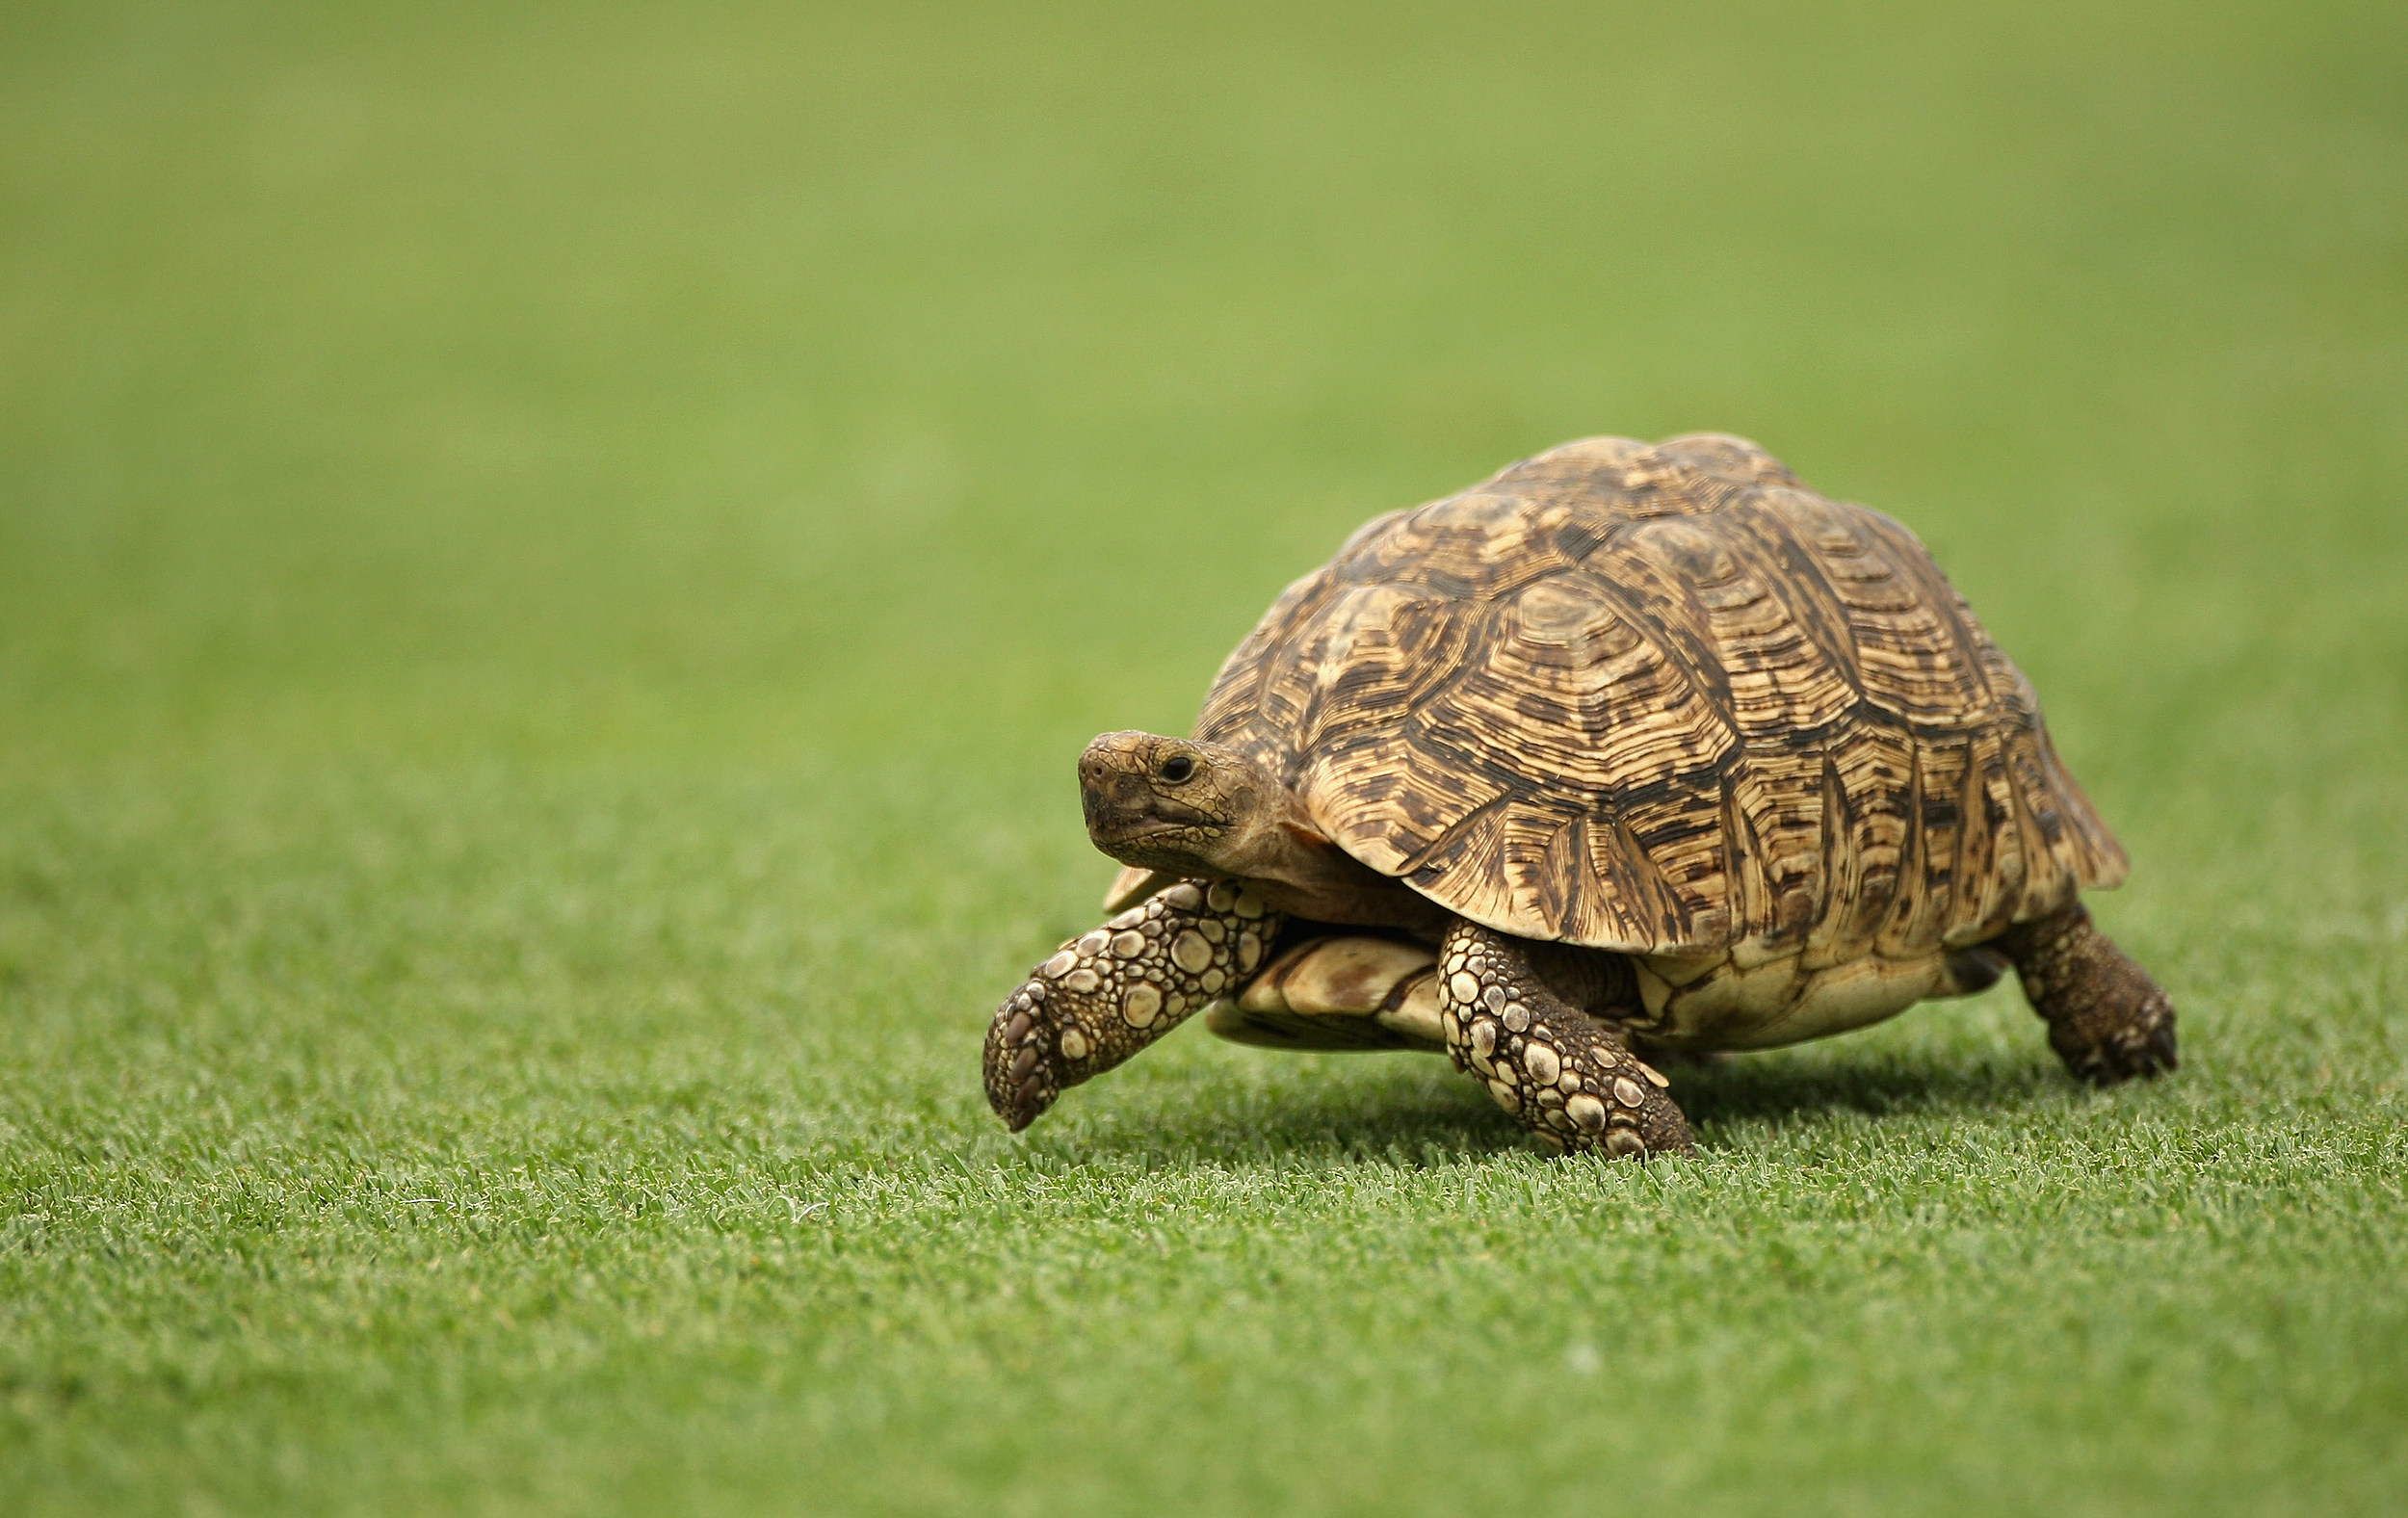 That Tortoise Can Eat! [VIDEO]